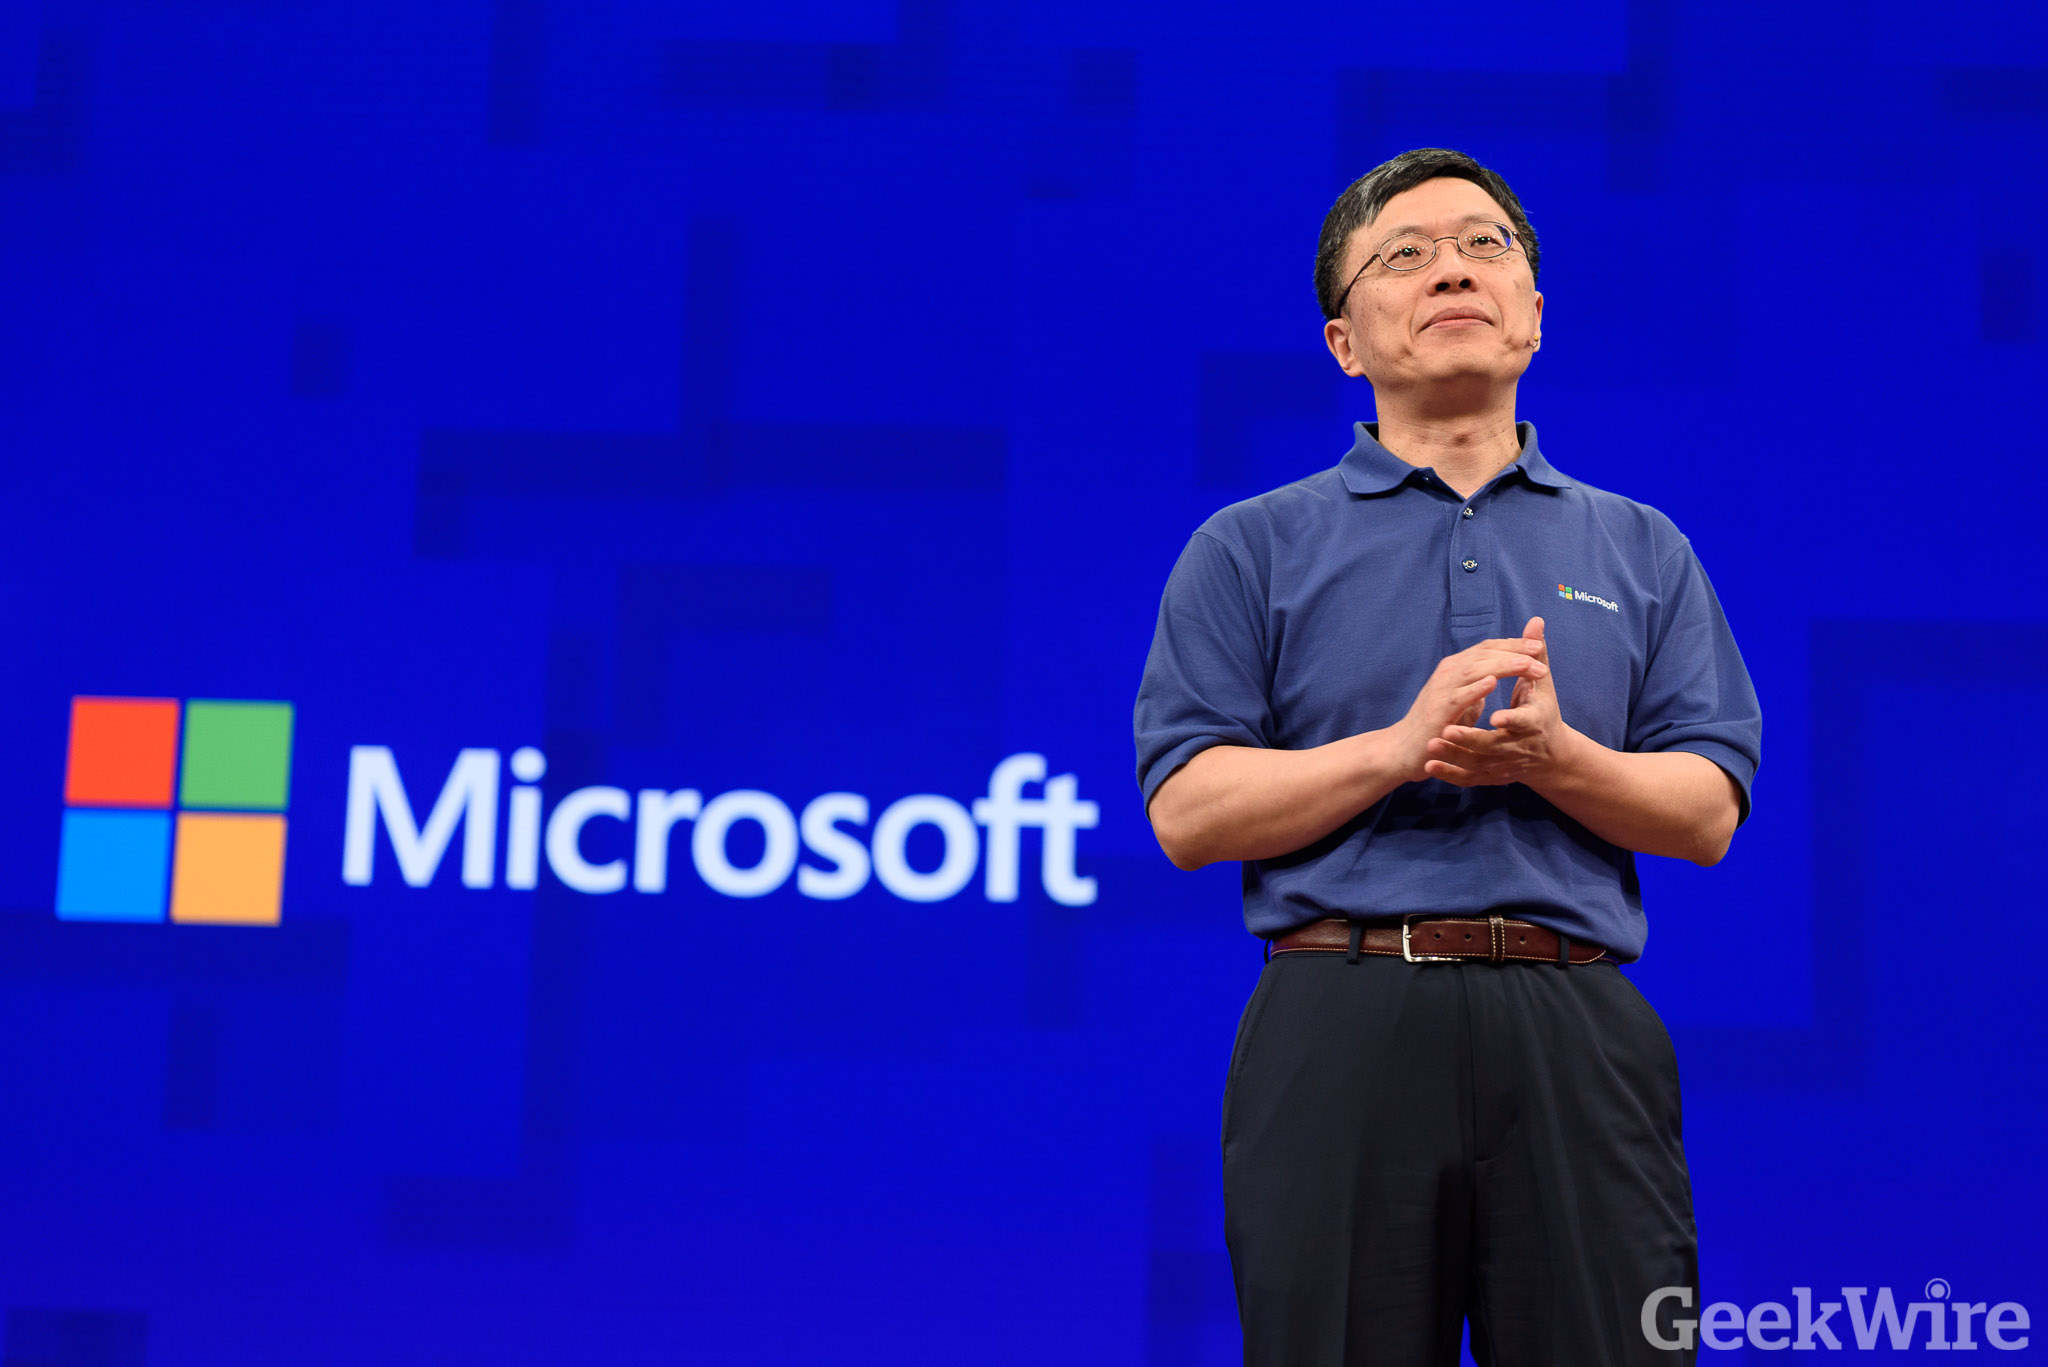 Microsoft will be adding AI ethics to its standard checklist for product release